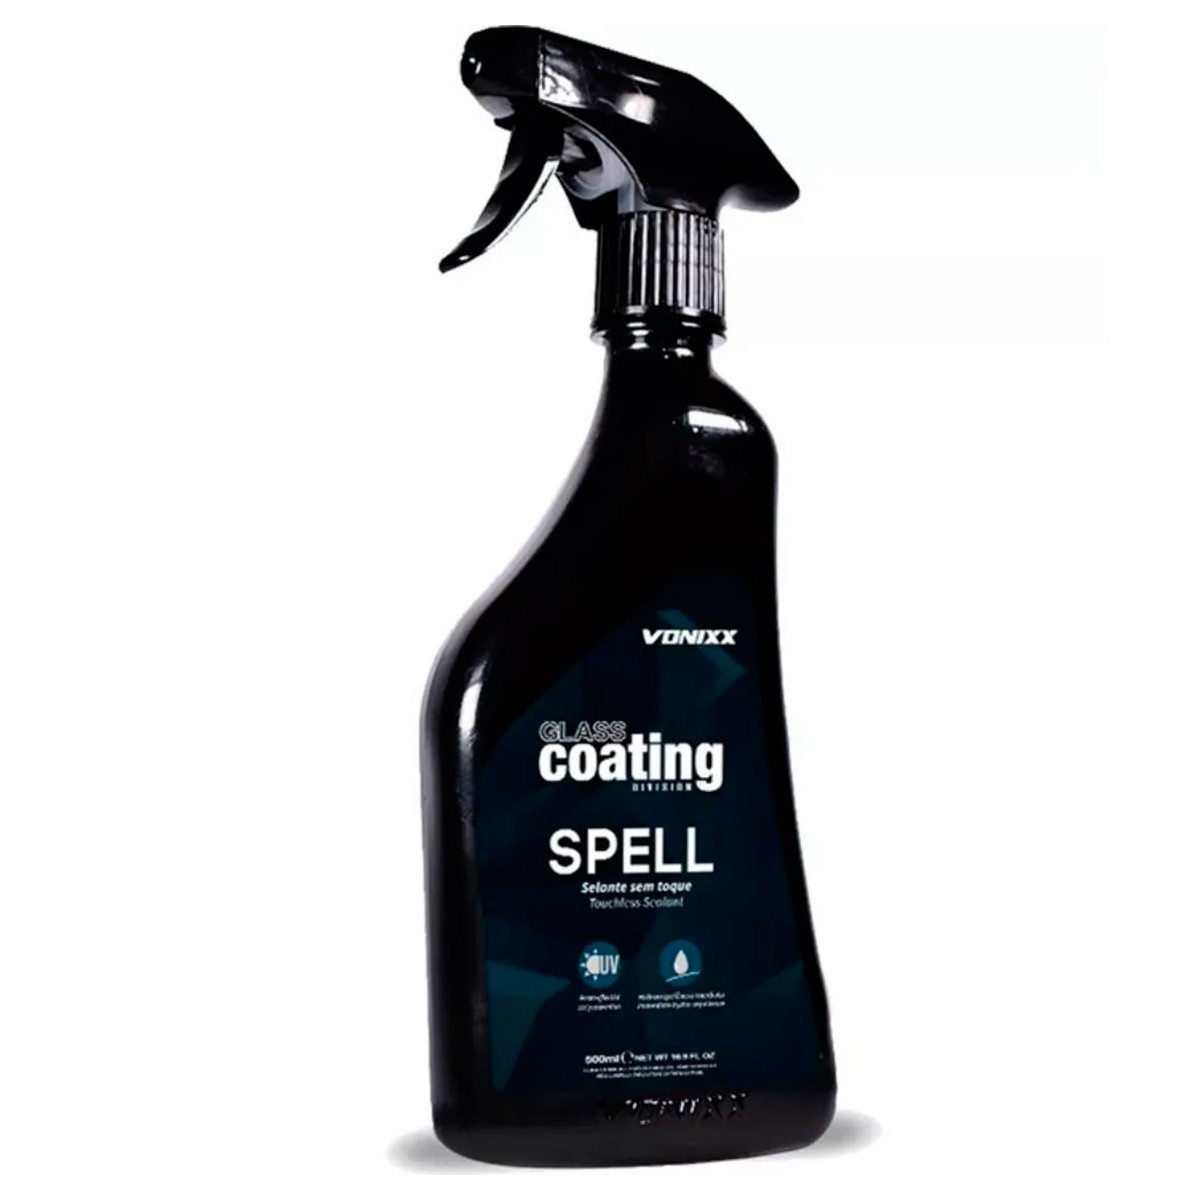 Glass Coating Spell 500ml - Vonixx